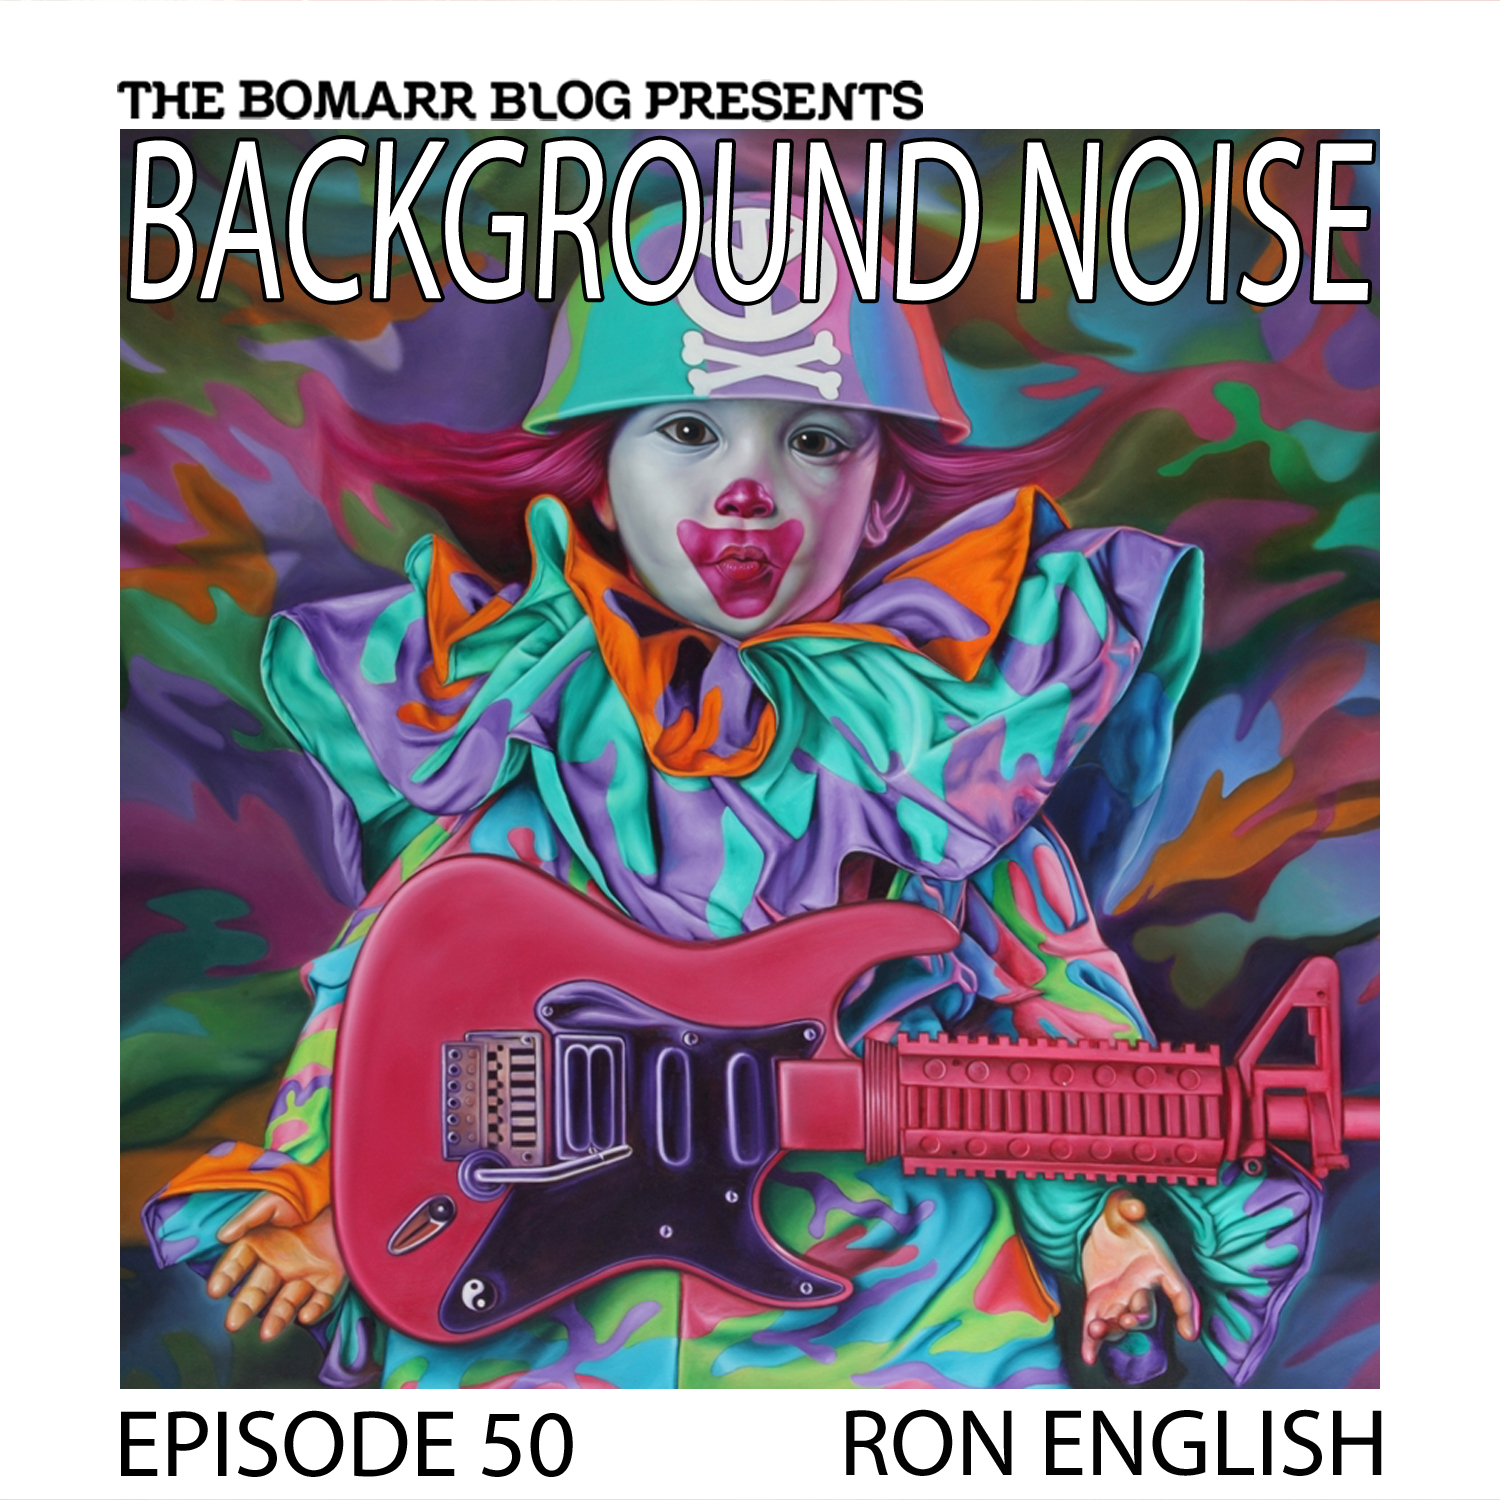 THE BACKGROUND NOISE PODCAST SERIES FOCUSES ON THE MUSIC THAT ARTISTS LISTEN TO WHEN THEY WORK, WHAT MUSIC INSPIRES THEM, OR JUST MUSIC THEY LIKE. THIS WEEK, IN EPISODE 50, THE FOCUS IS ON ARTIST RON ENGLISH